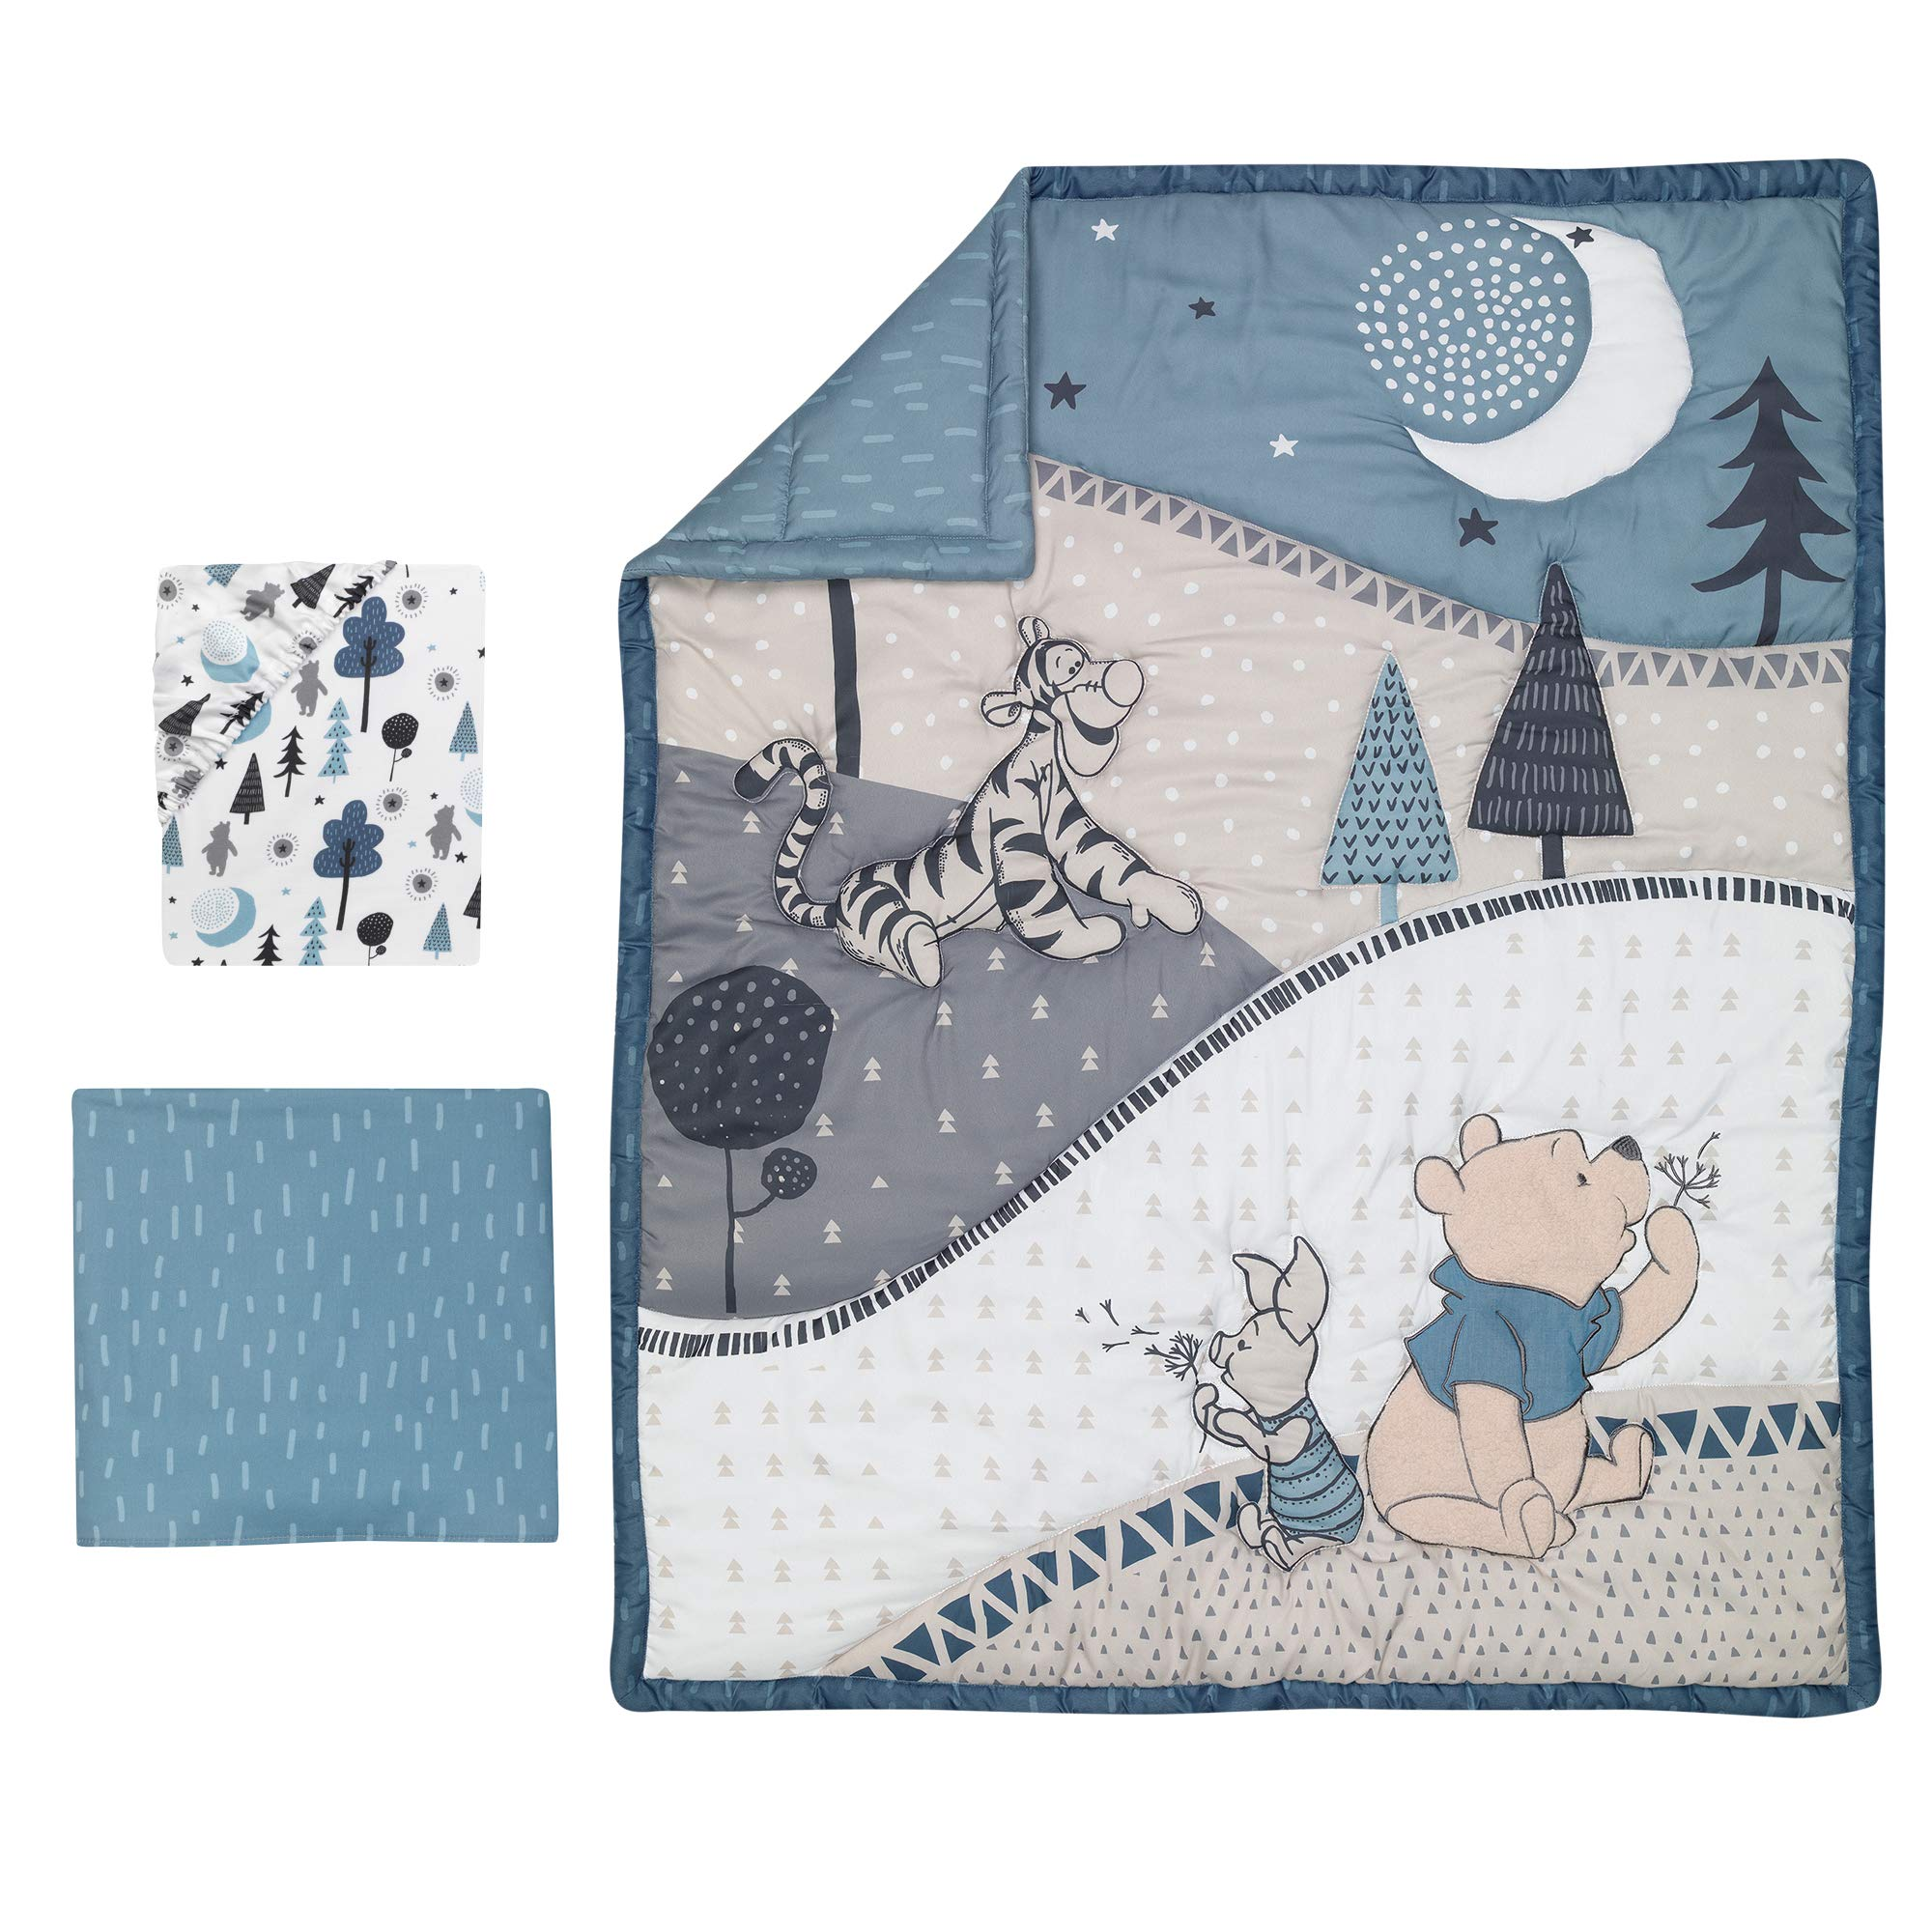 Lambs & Ivy Forever Pooh 3Piece Baby Crib Bedding Set, Blue by Lambs & Ivy (Image #2)